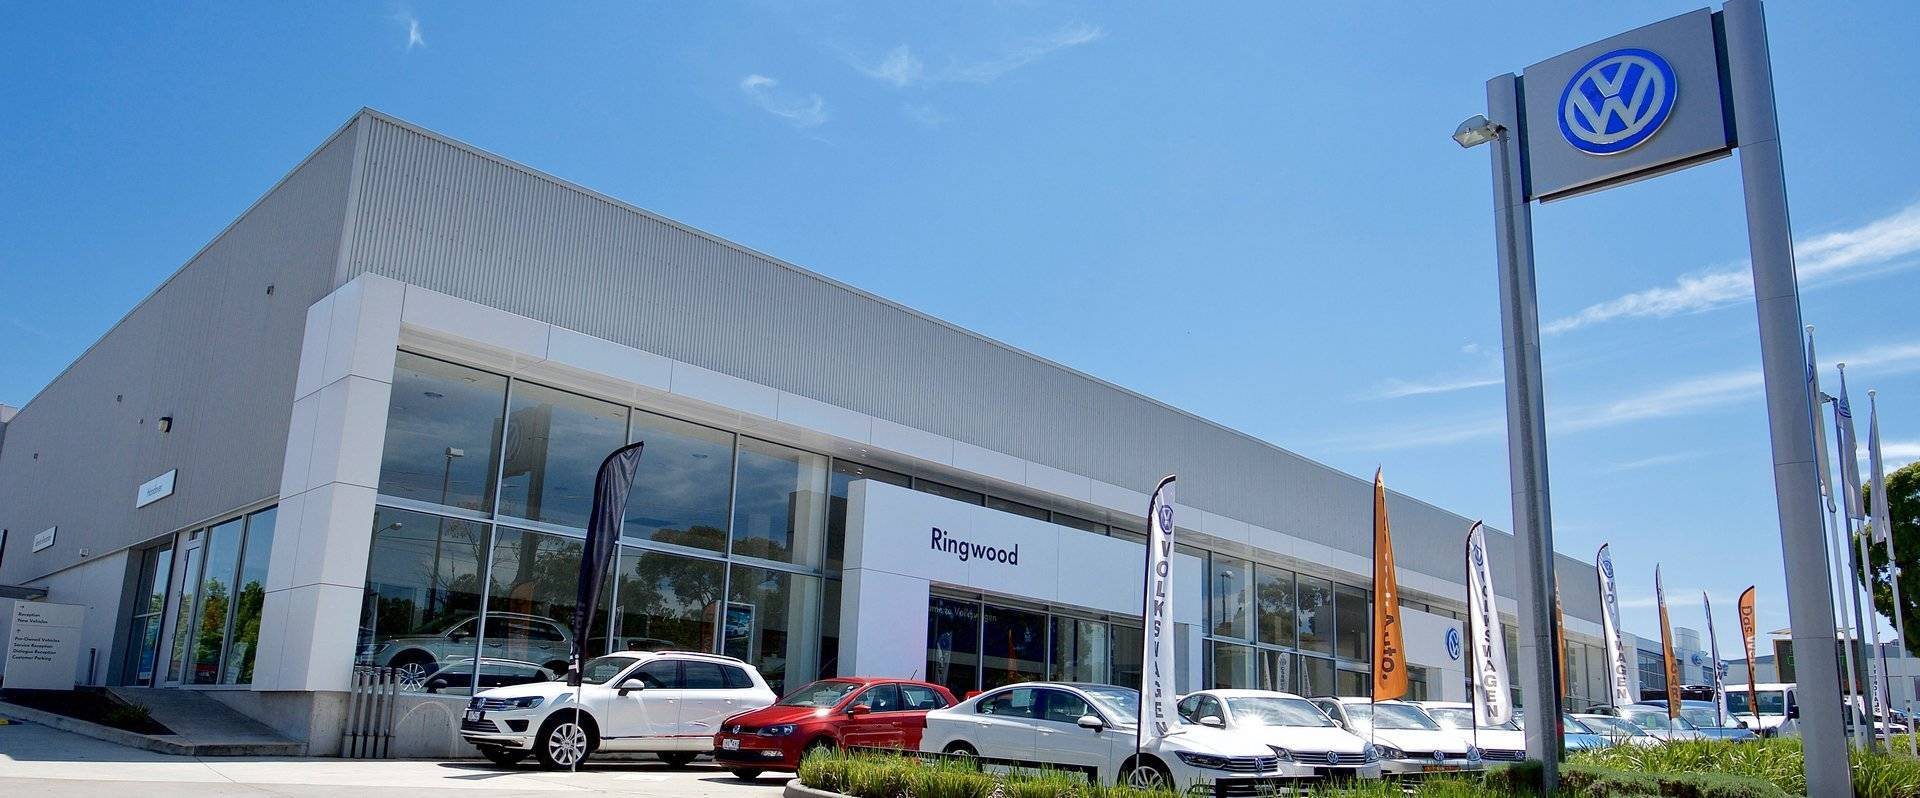 Ringwood Volkswagen Picture of Showroom